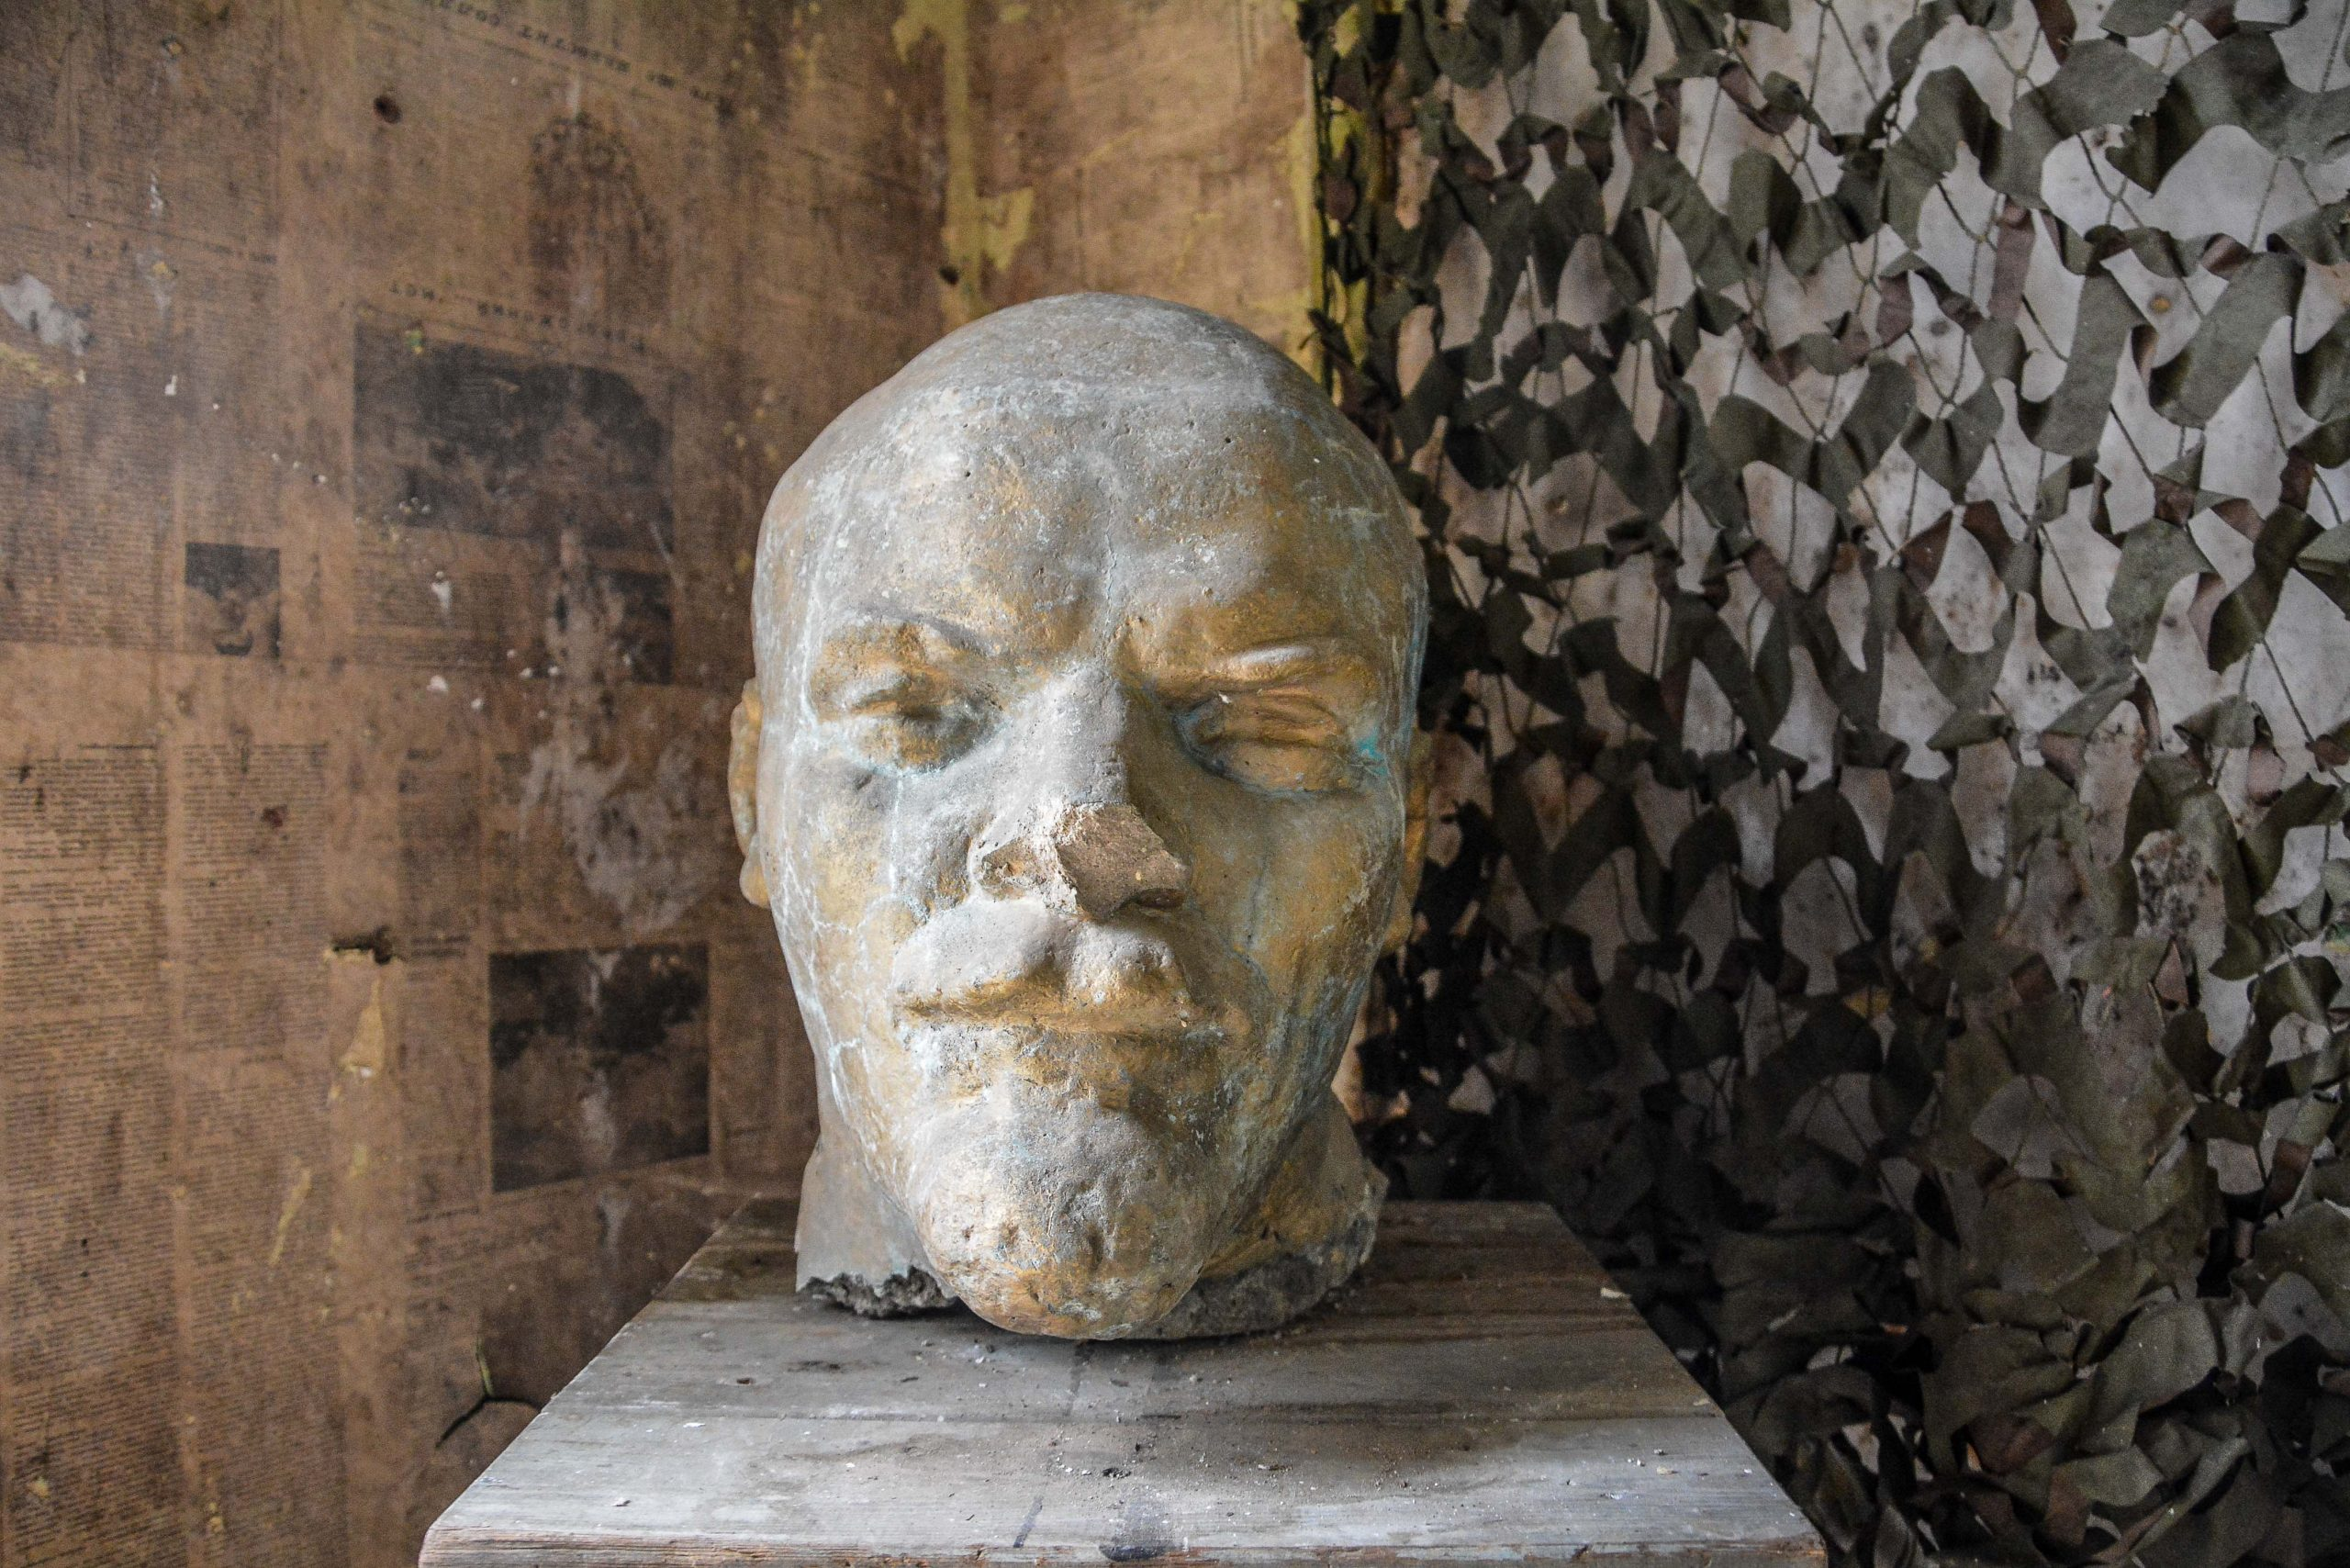 lenin bust bunker zeppelin amt 500 maybach bunker ranet wehrmacht sowjet soviet military zossen brandenburg germany lost palces urbex abandoned